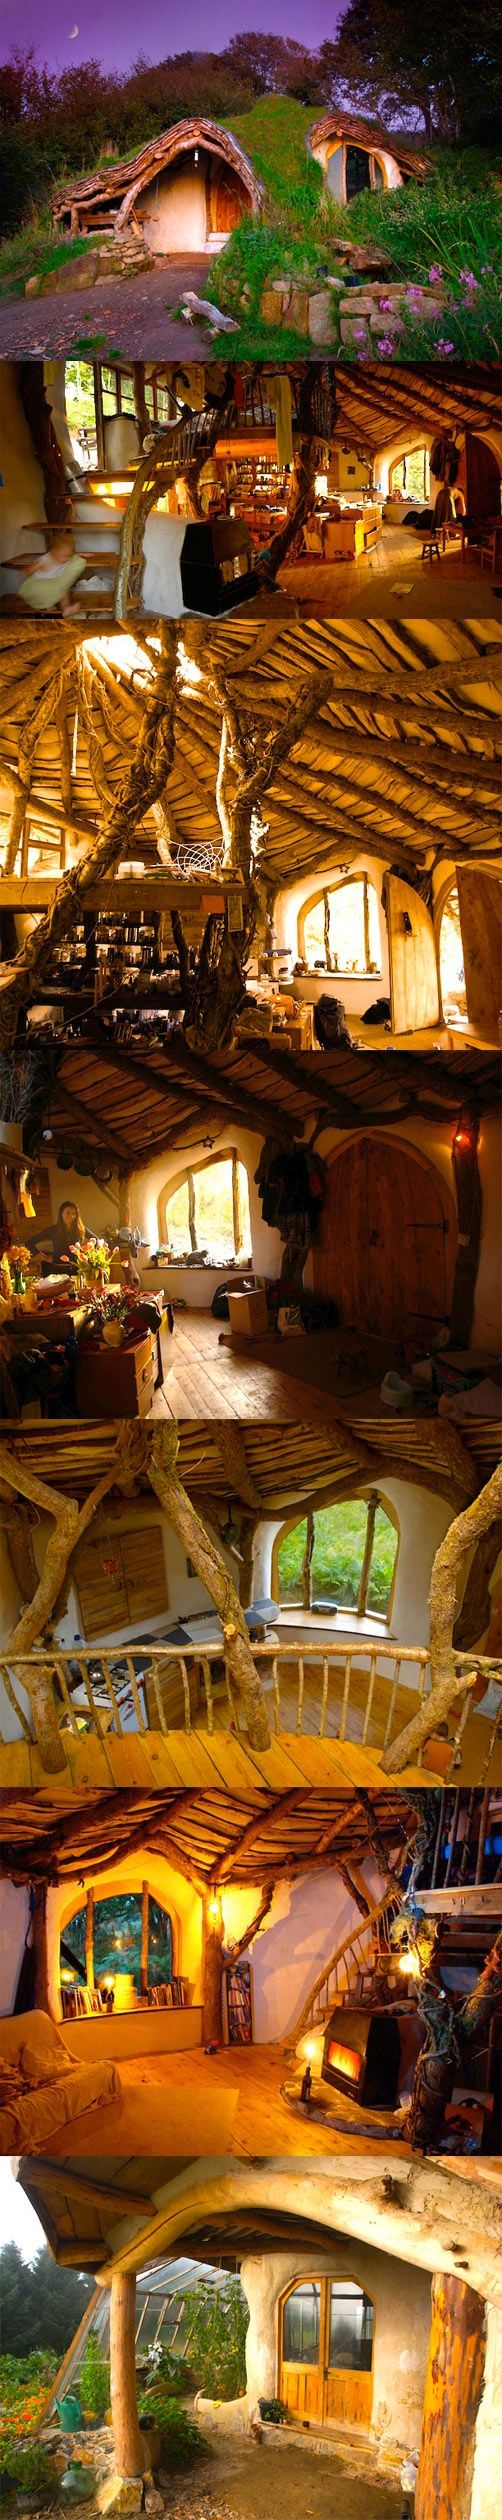 I nice hobbit style home, complete with sod roof, and plenty of character. http://marjan.yourfreedomproject.com